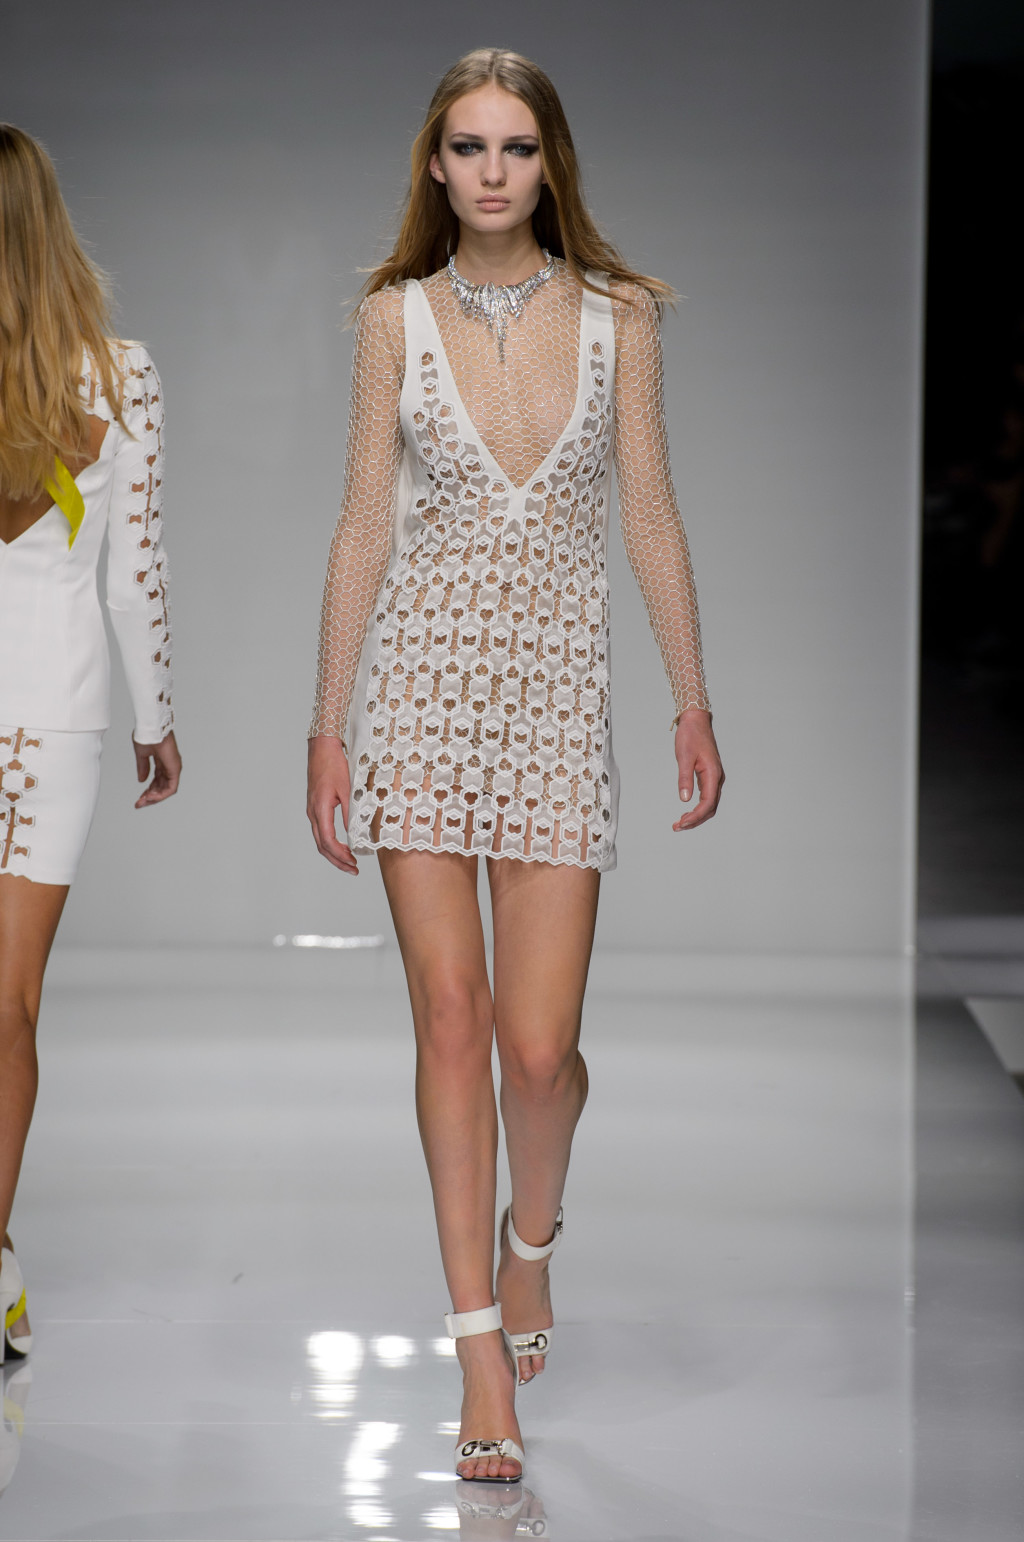 Atelier Versace's Body-Sculpting Collection for Couture 2016